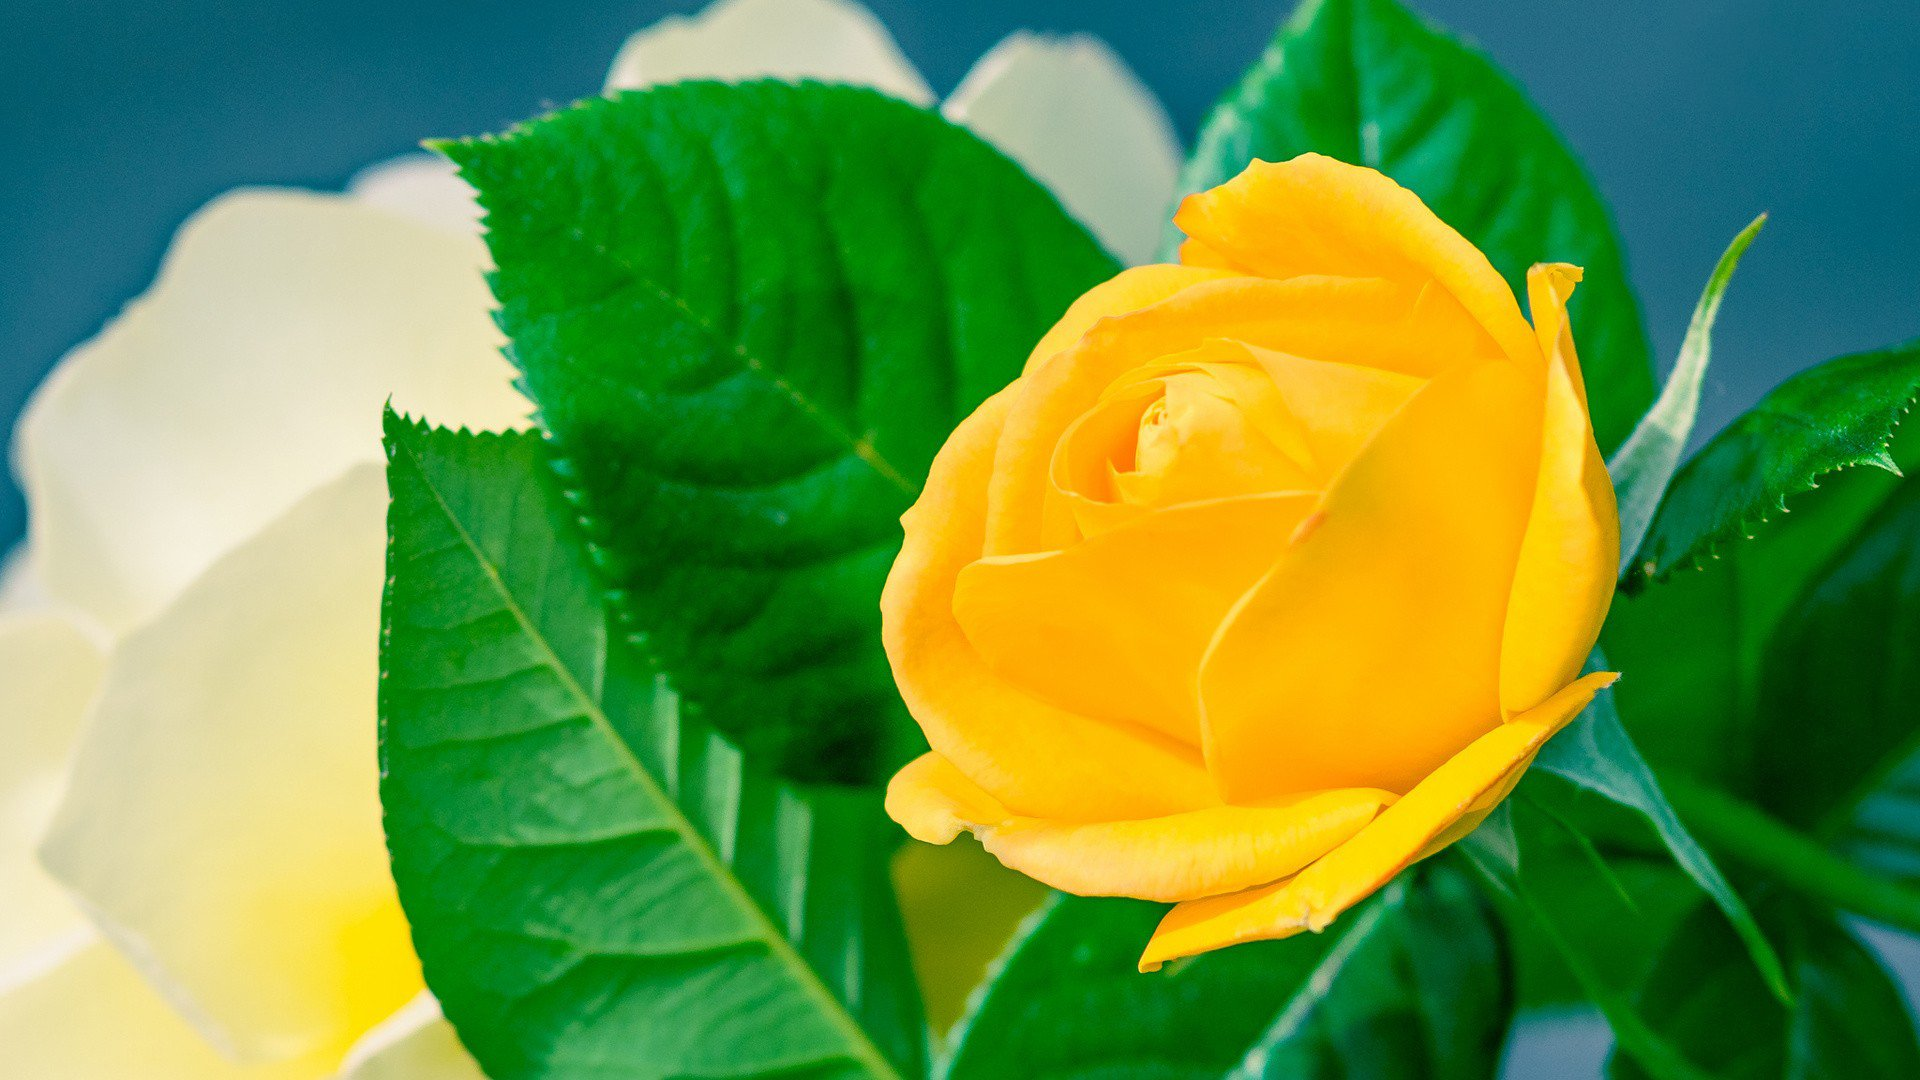 Download Home Hd Wallpapers Flowers Yellow Rose Hd Wallpaper